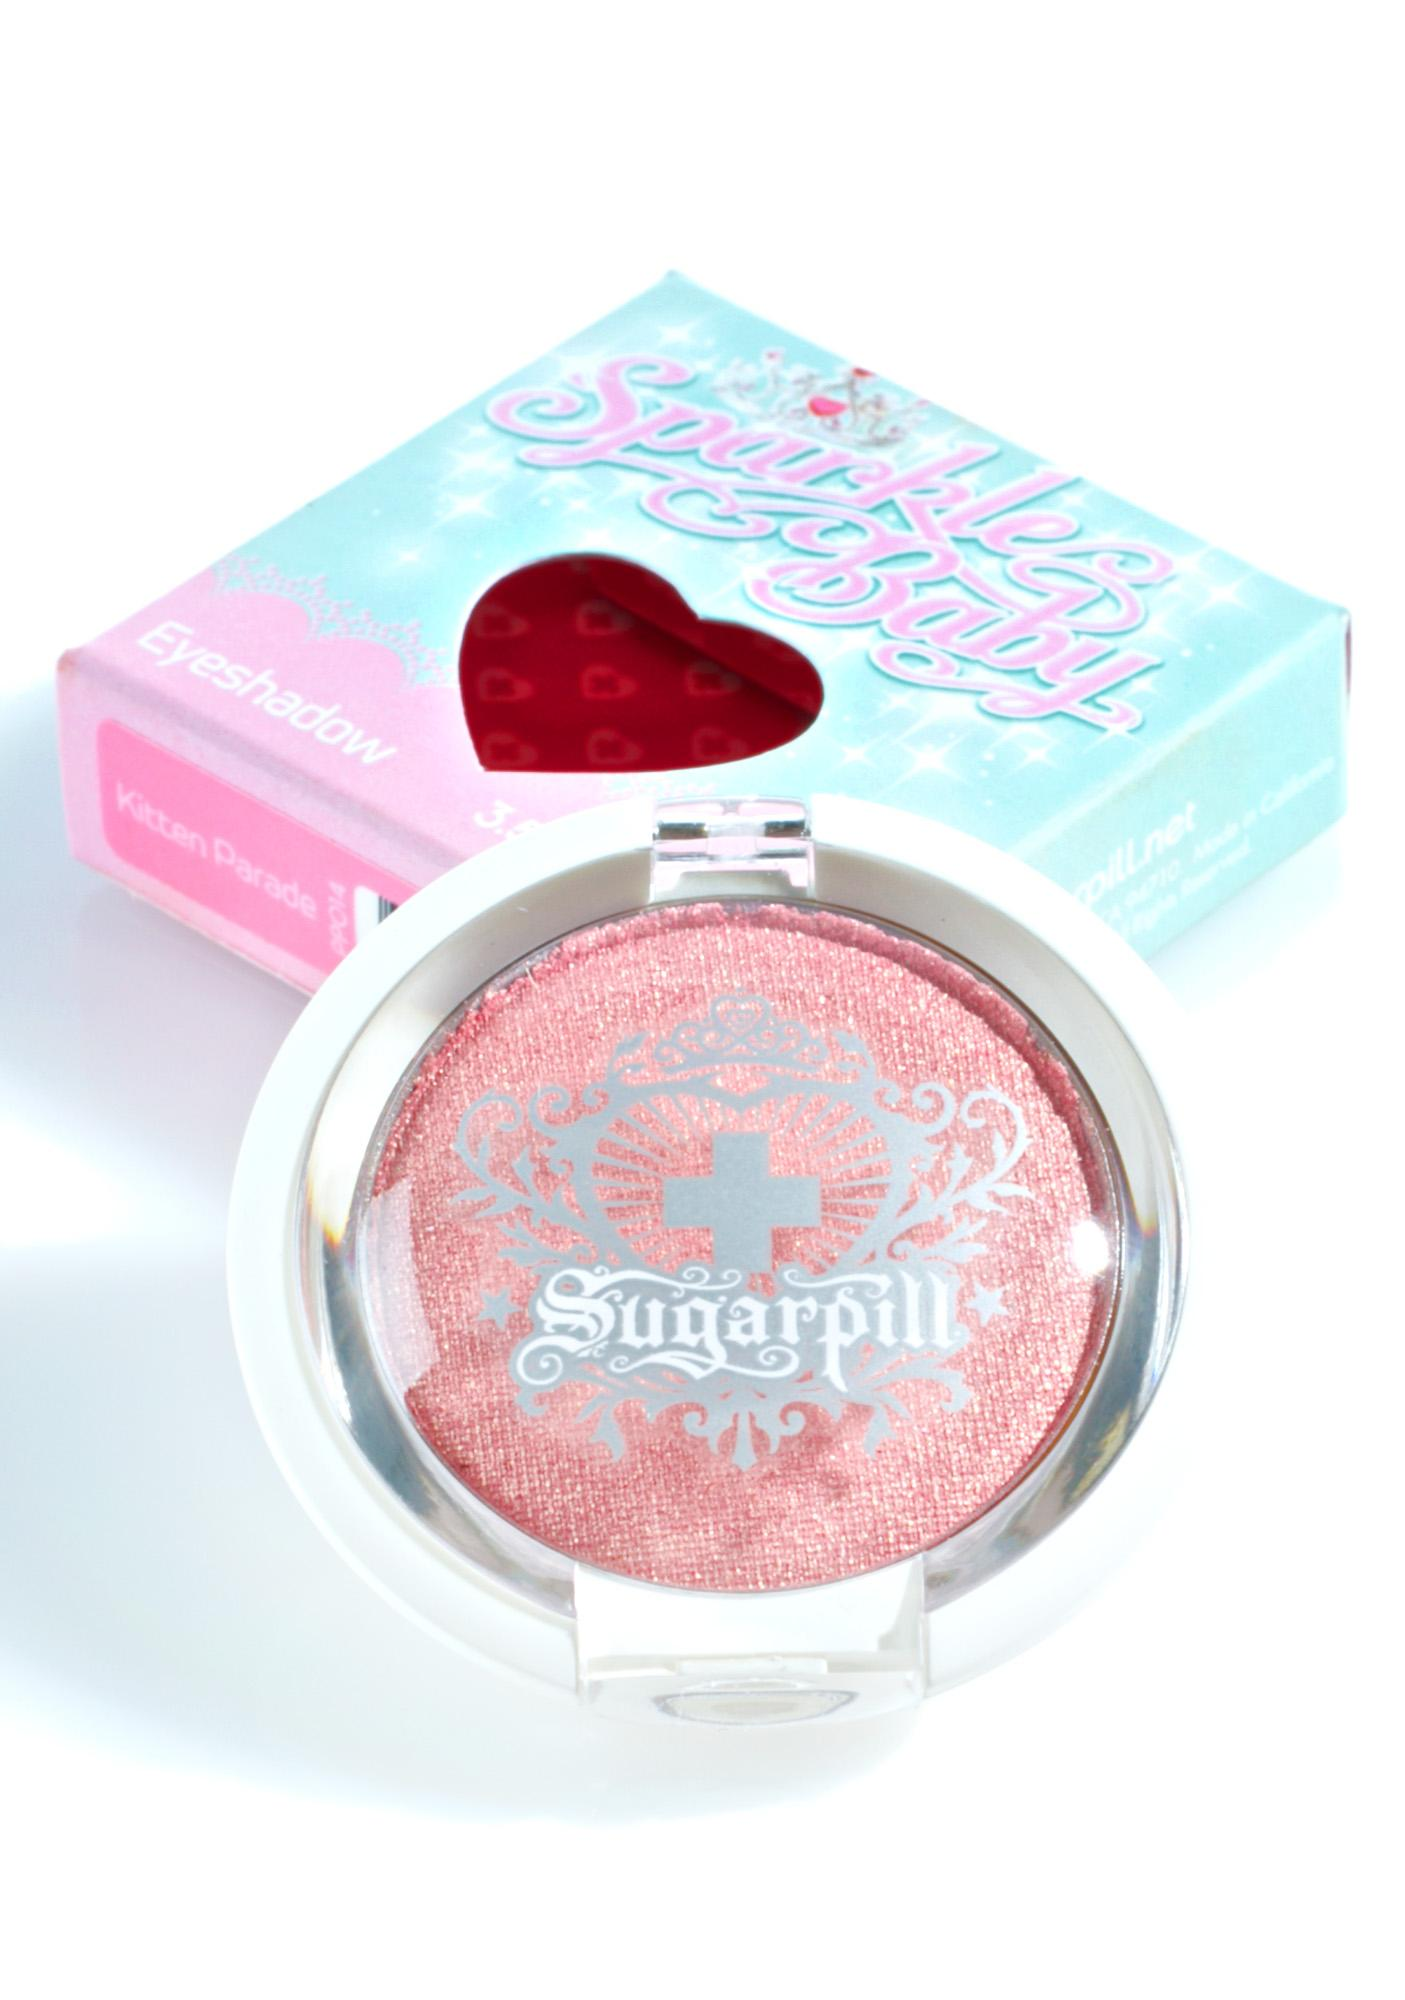 Sugarpill Kitten Parade Pressed Eyeshadow